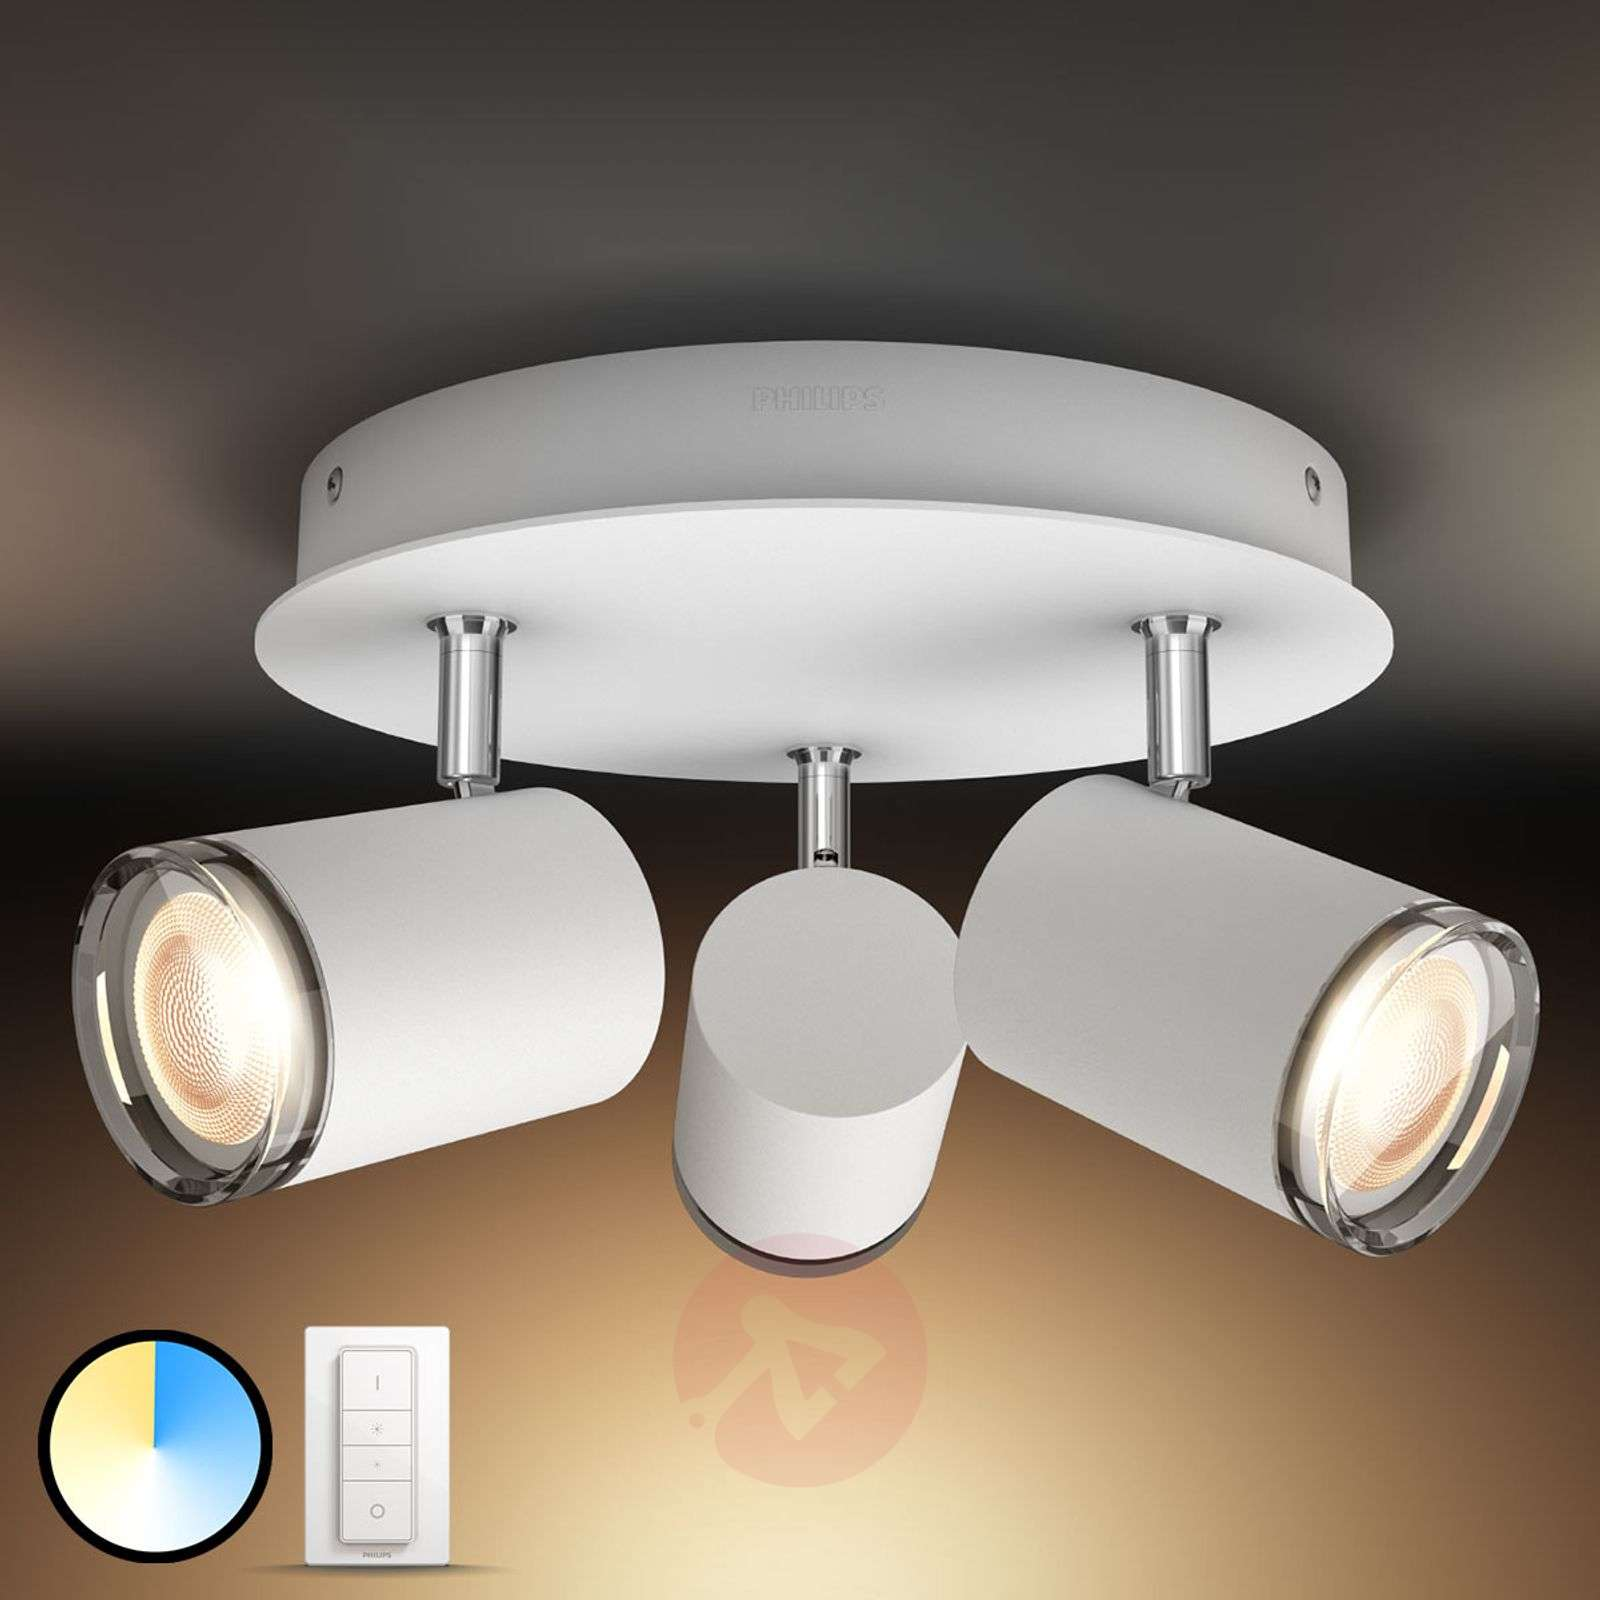 Plafoniera Led Philips : Acquista philips hue white ambiance adore plafoniera led lampade